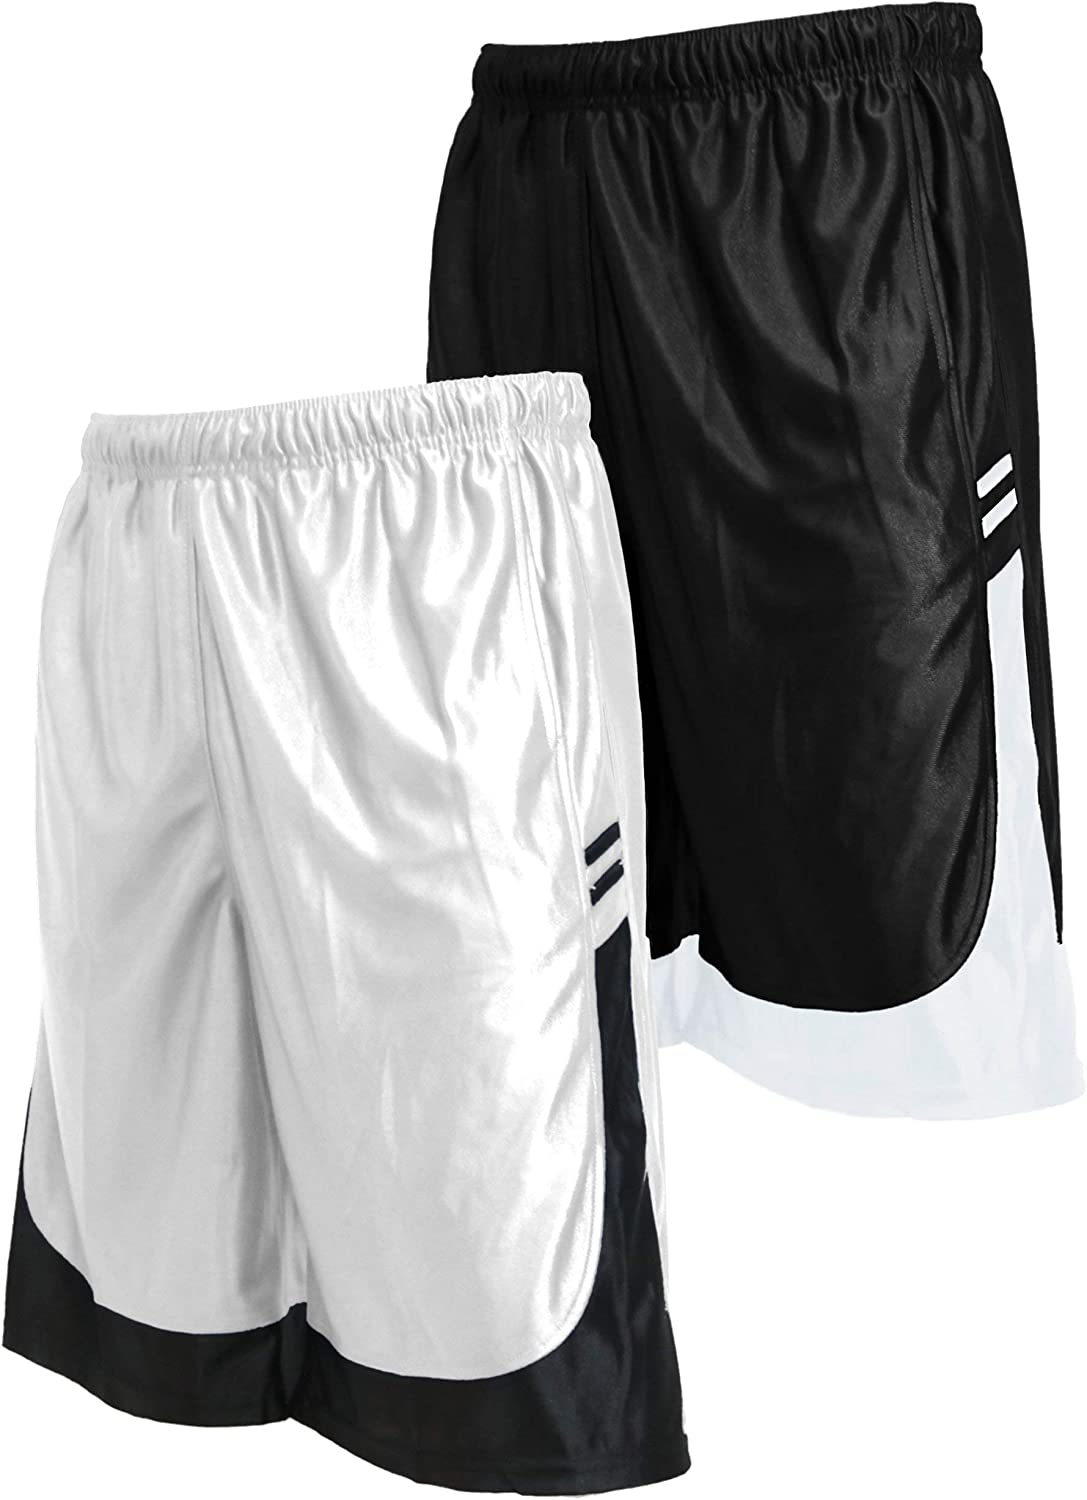 OLLIE ARNES Gym Shorts for Men Basic Active Athletic Dazzle Performance Short with Pockets